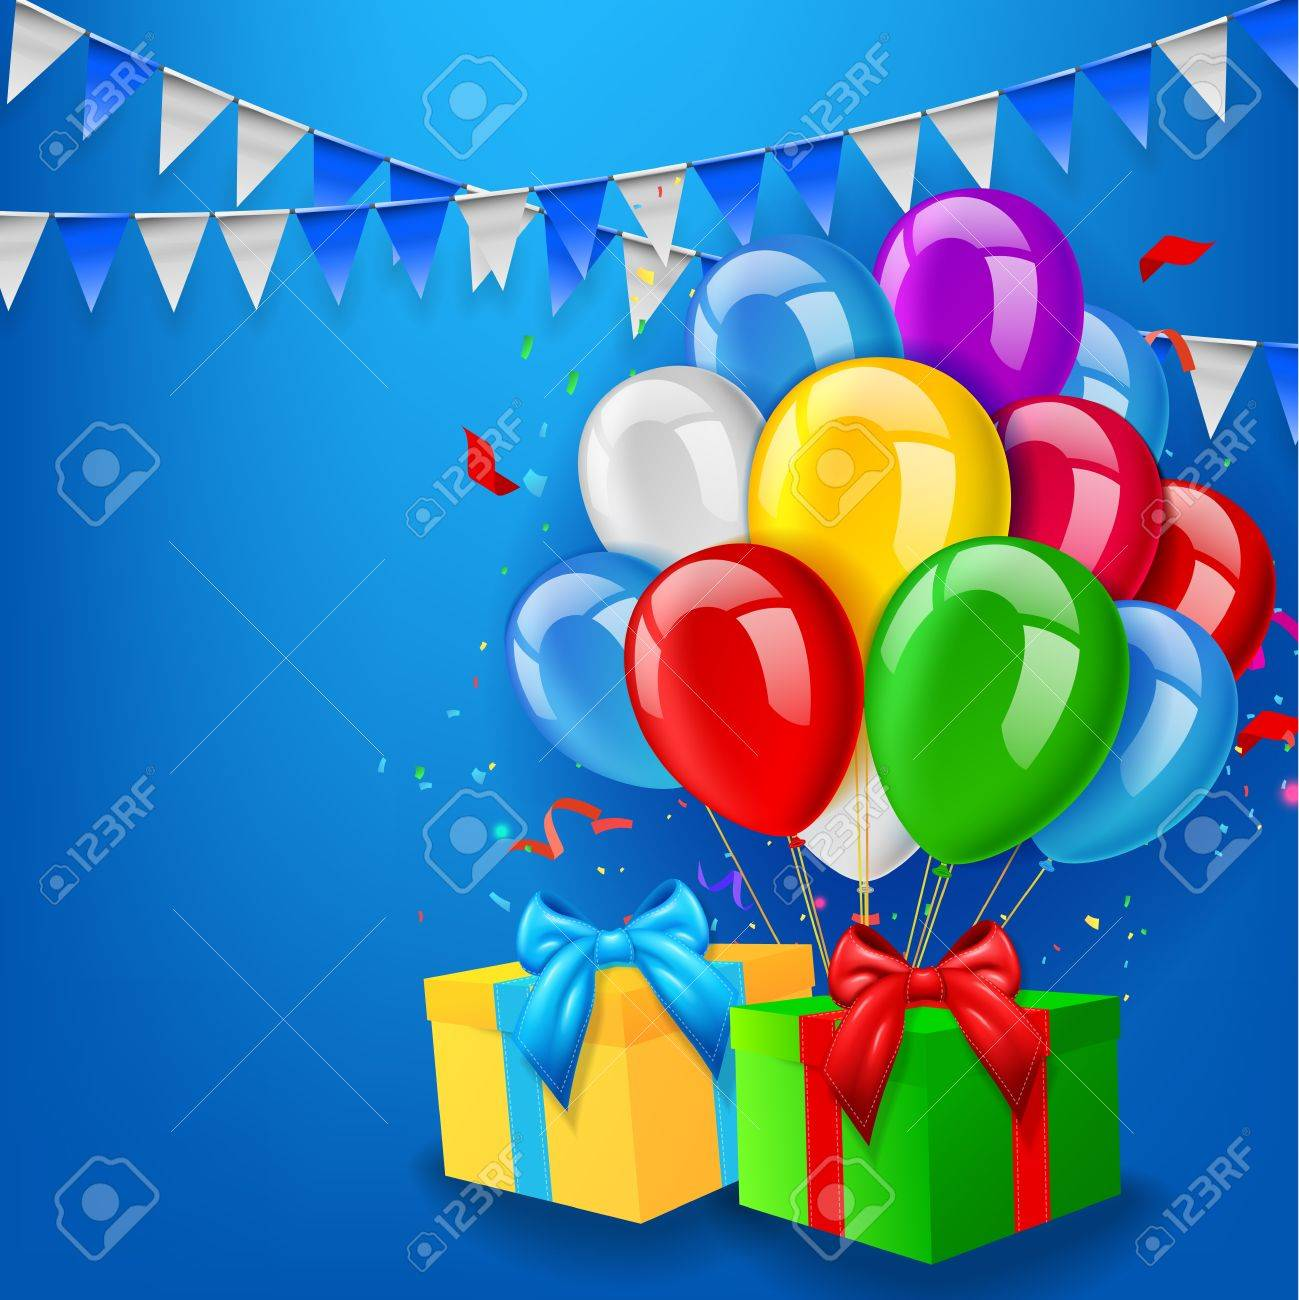 Birthday background with balloons, gift and confetti - 45492047